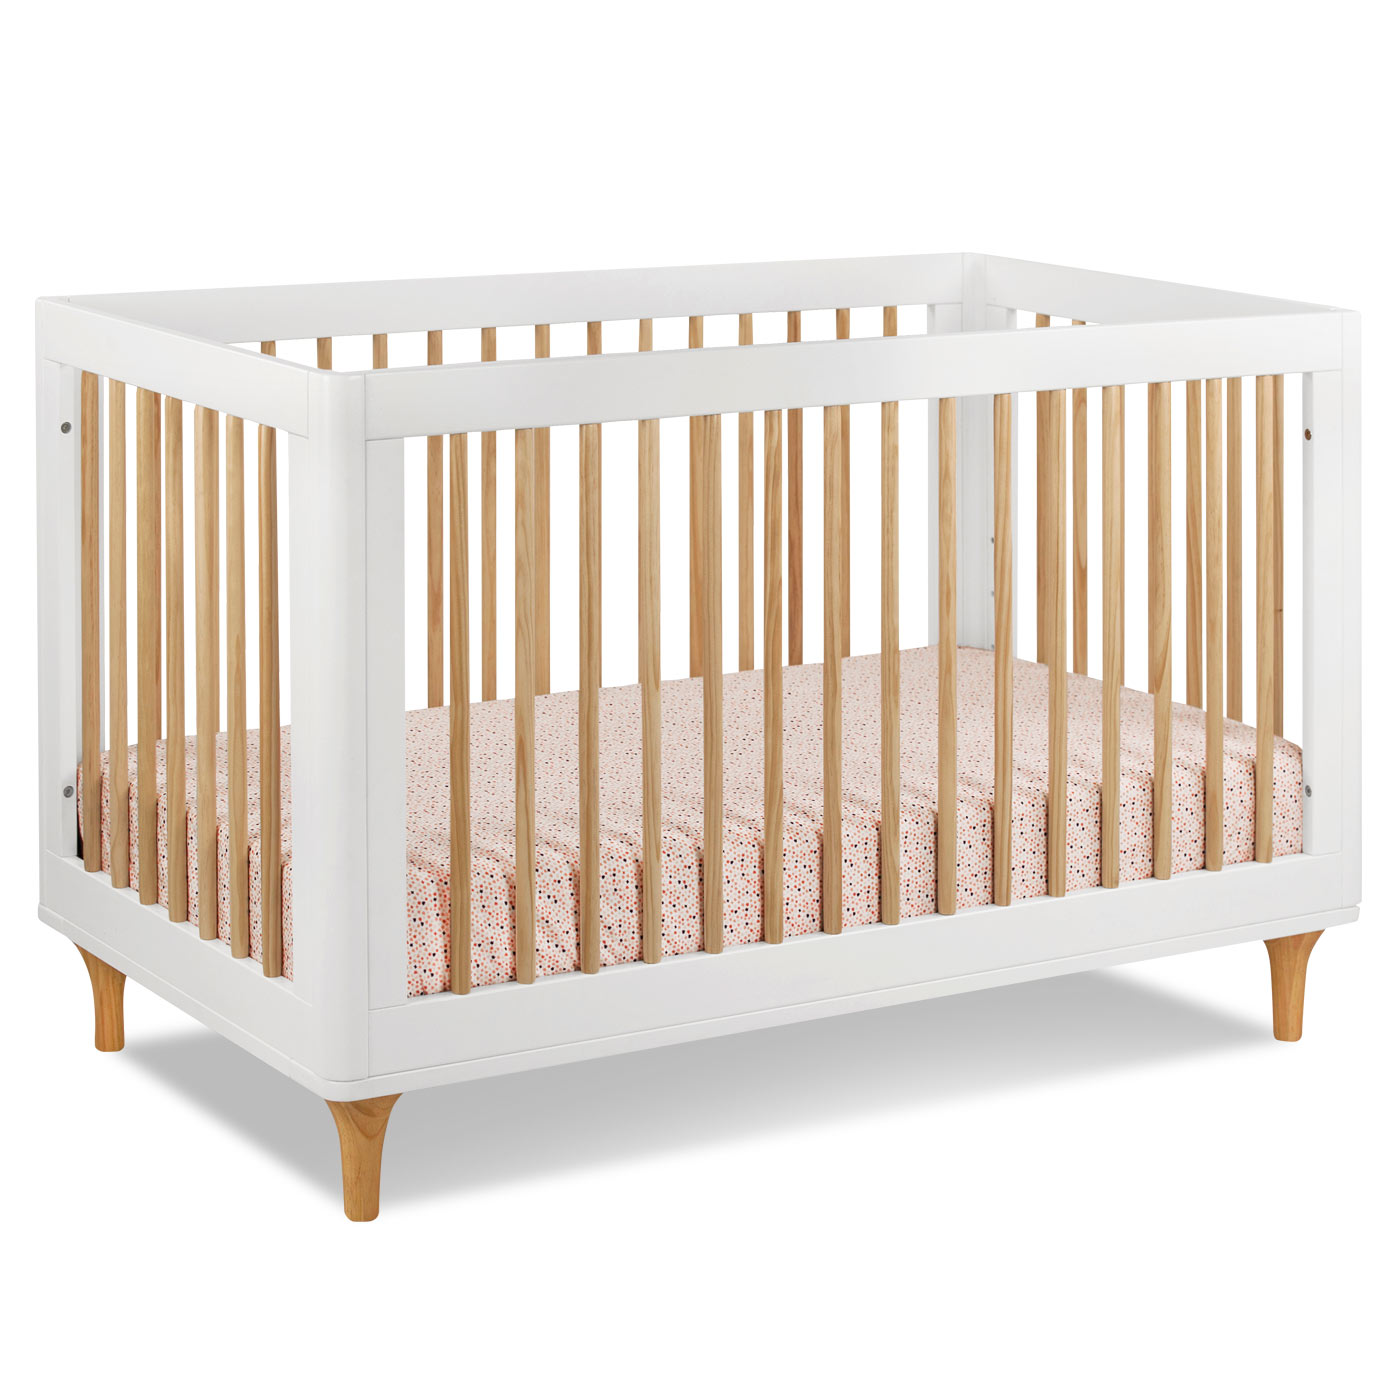 Charming Crib In White And Cream By Munire Crib For Nursery Furniture Ideas